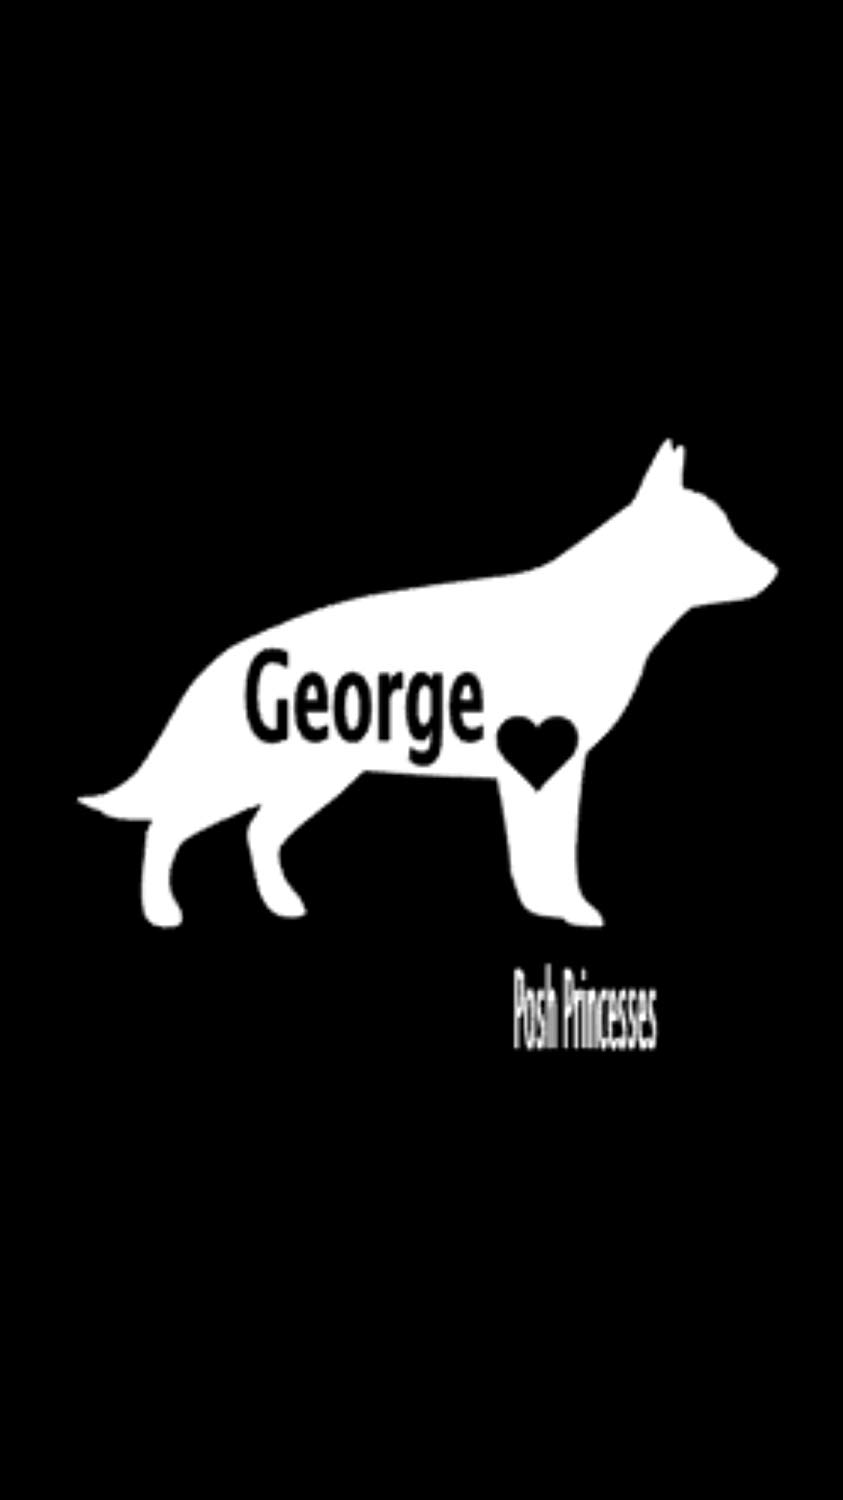 """German Shepherd Personalized Vinyl Decal, Dog Decal Car Window Decal, Dog Food Container Decal, Laptop Sticker, White 3.5""""x 2.5"""""""